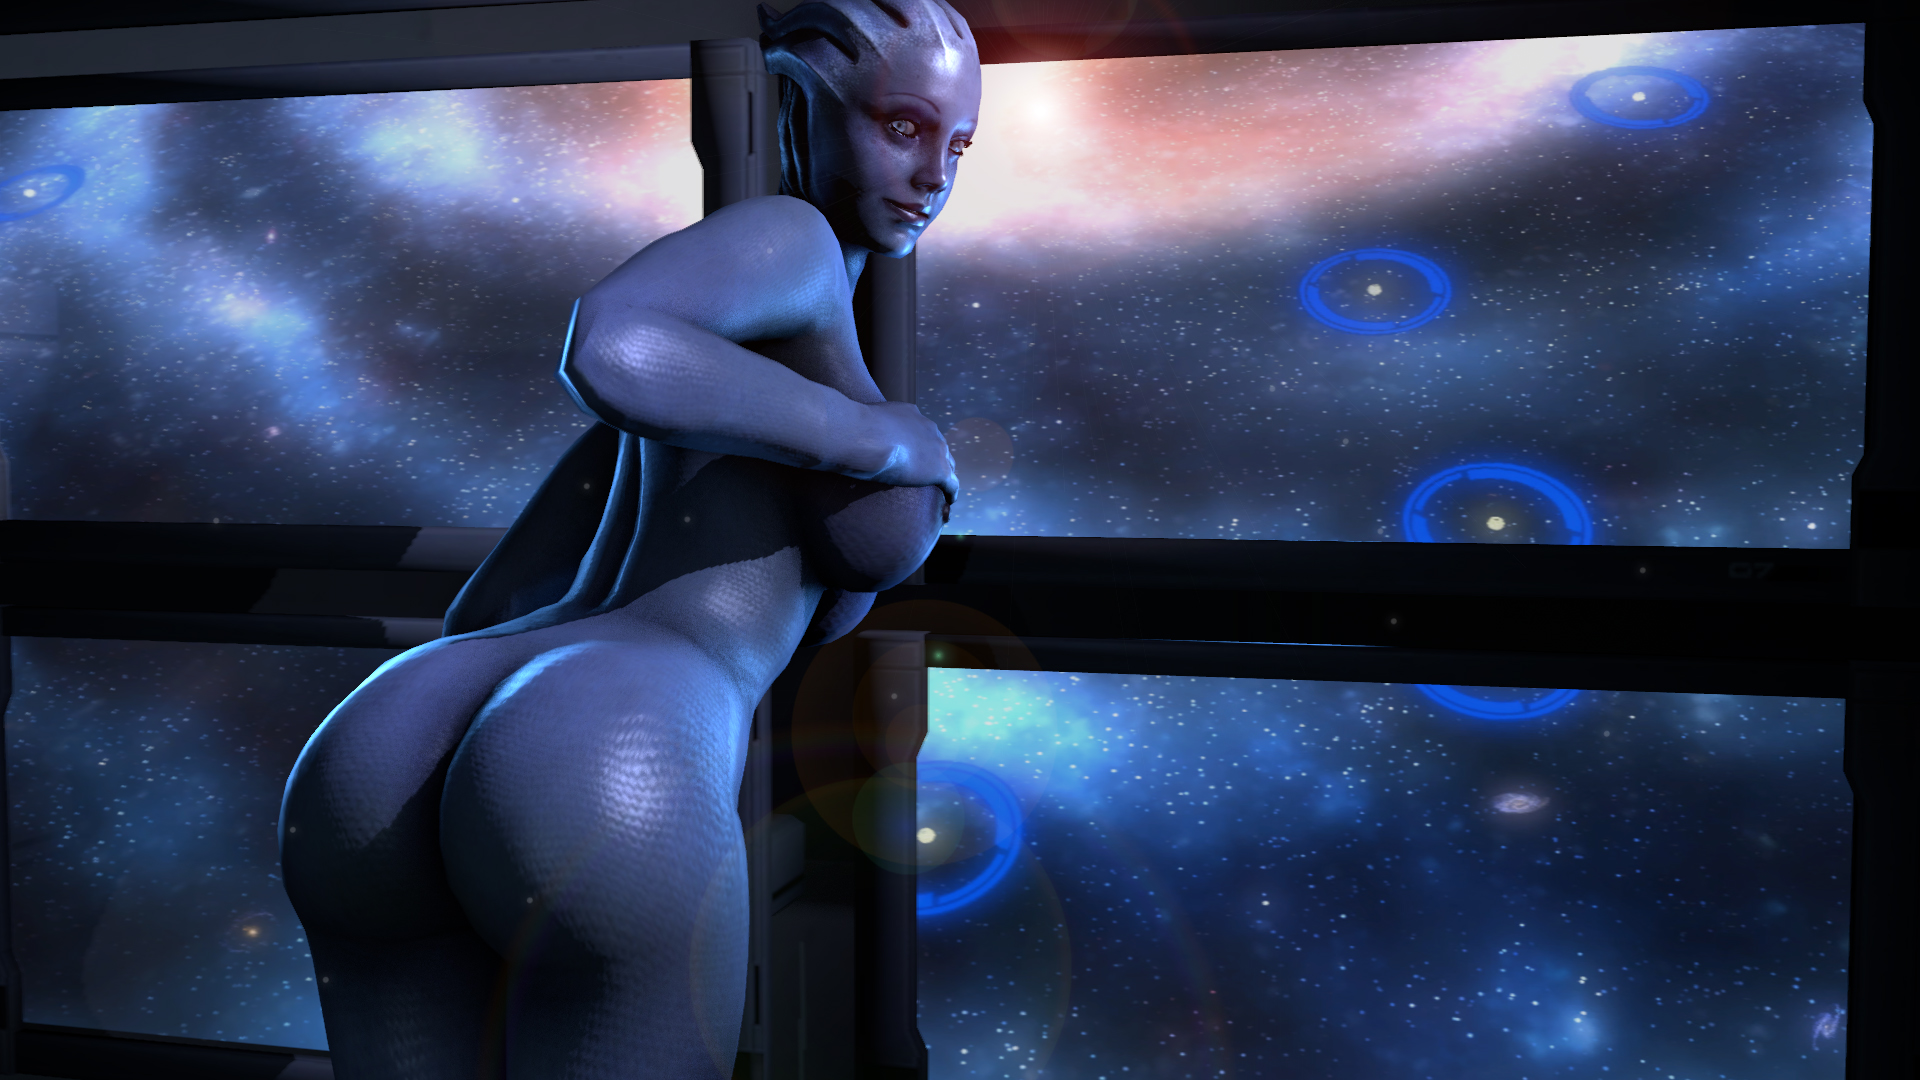 Naked mass effect characters pics porno picture